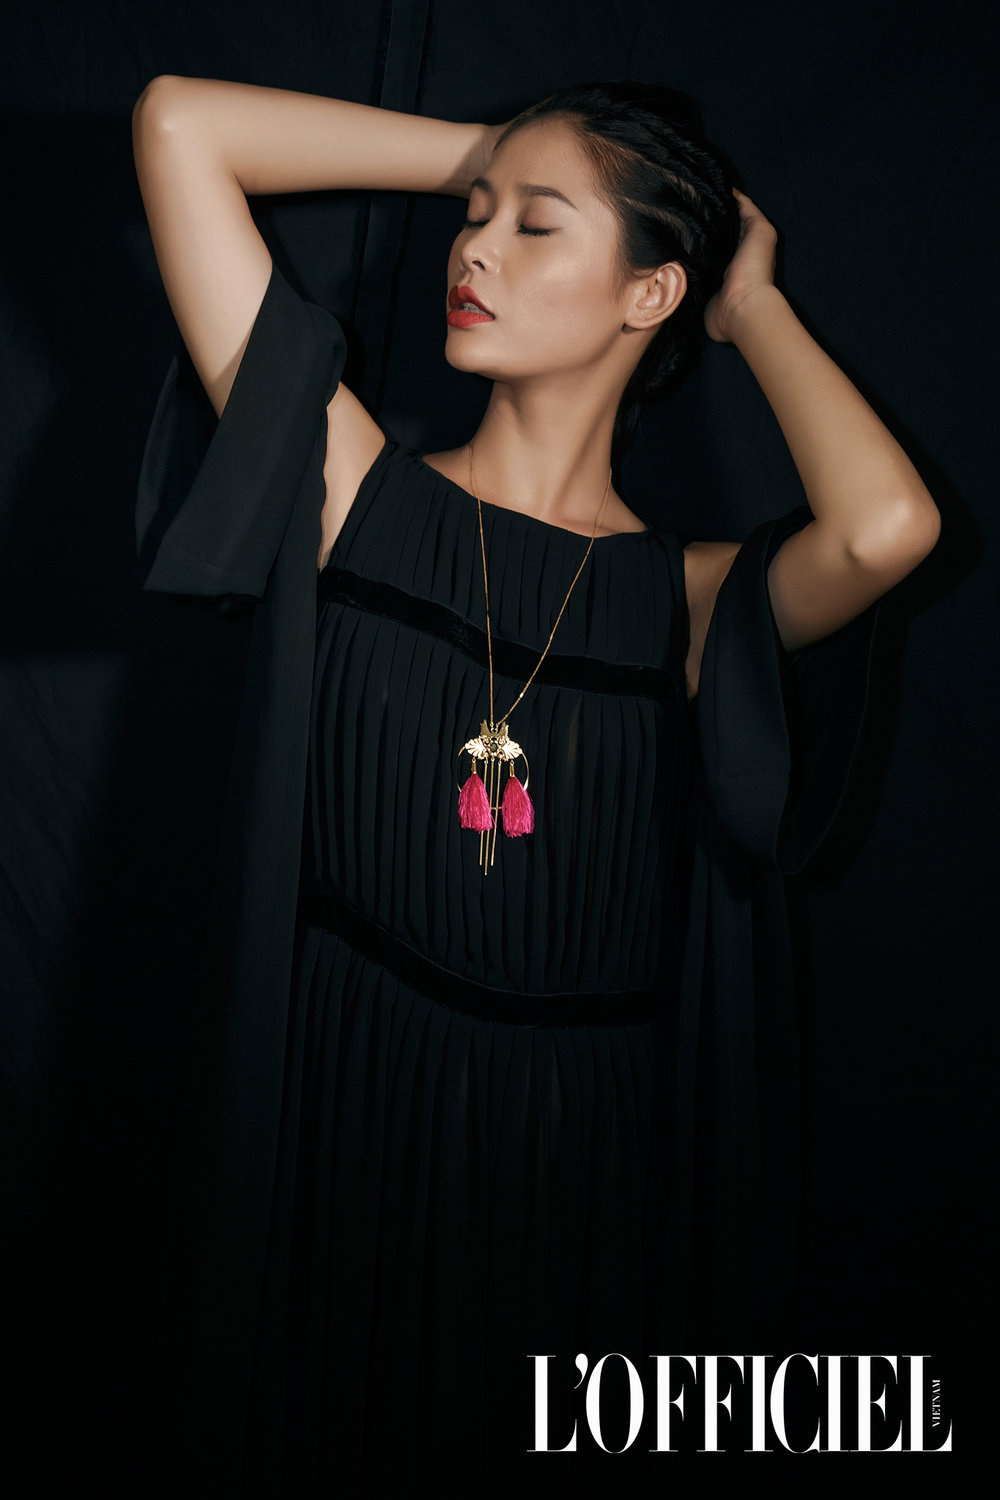 Nanjiy Necklace, 2018 Collection (L'officiel de la Mode vn)